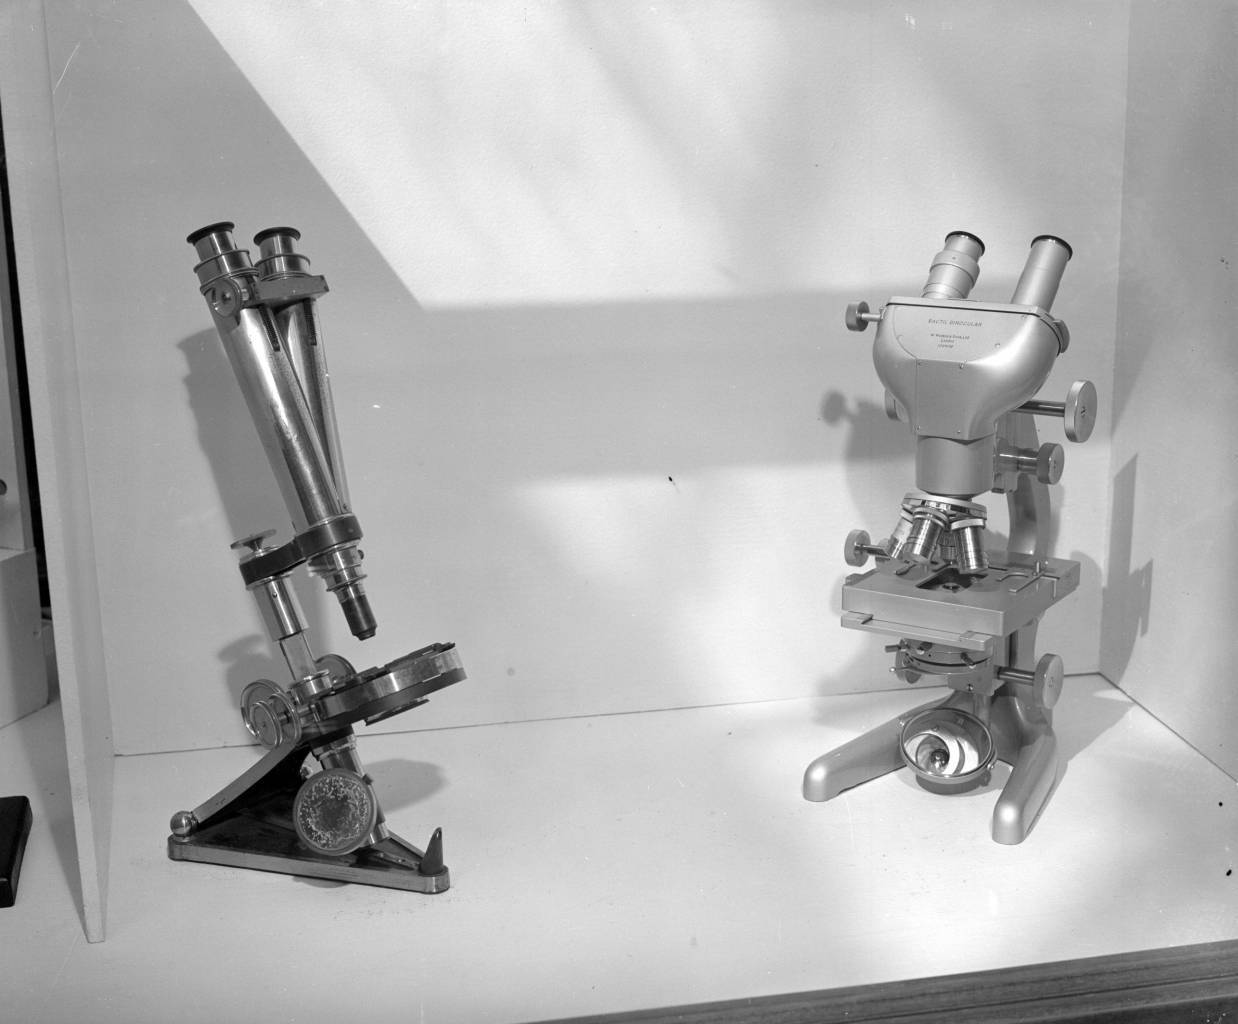 7th August 1950:  Two microscopes, one of which was presented to the French scientist Louis Pasteur by Whitbreads Brewery.  (Photo by Topical Press Agency/Getty Images)